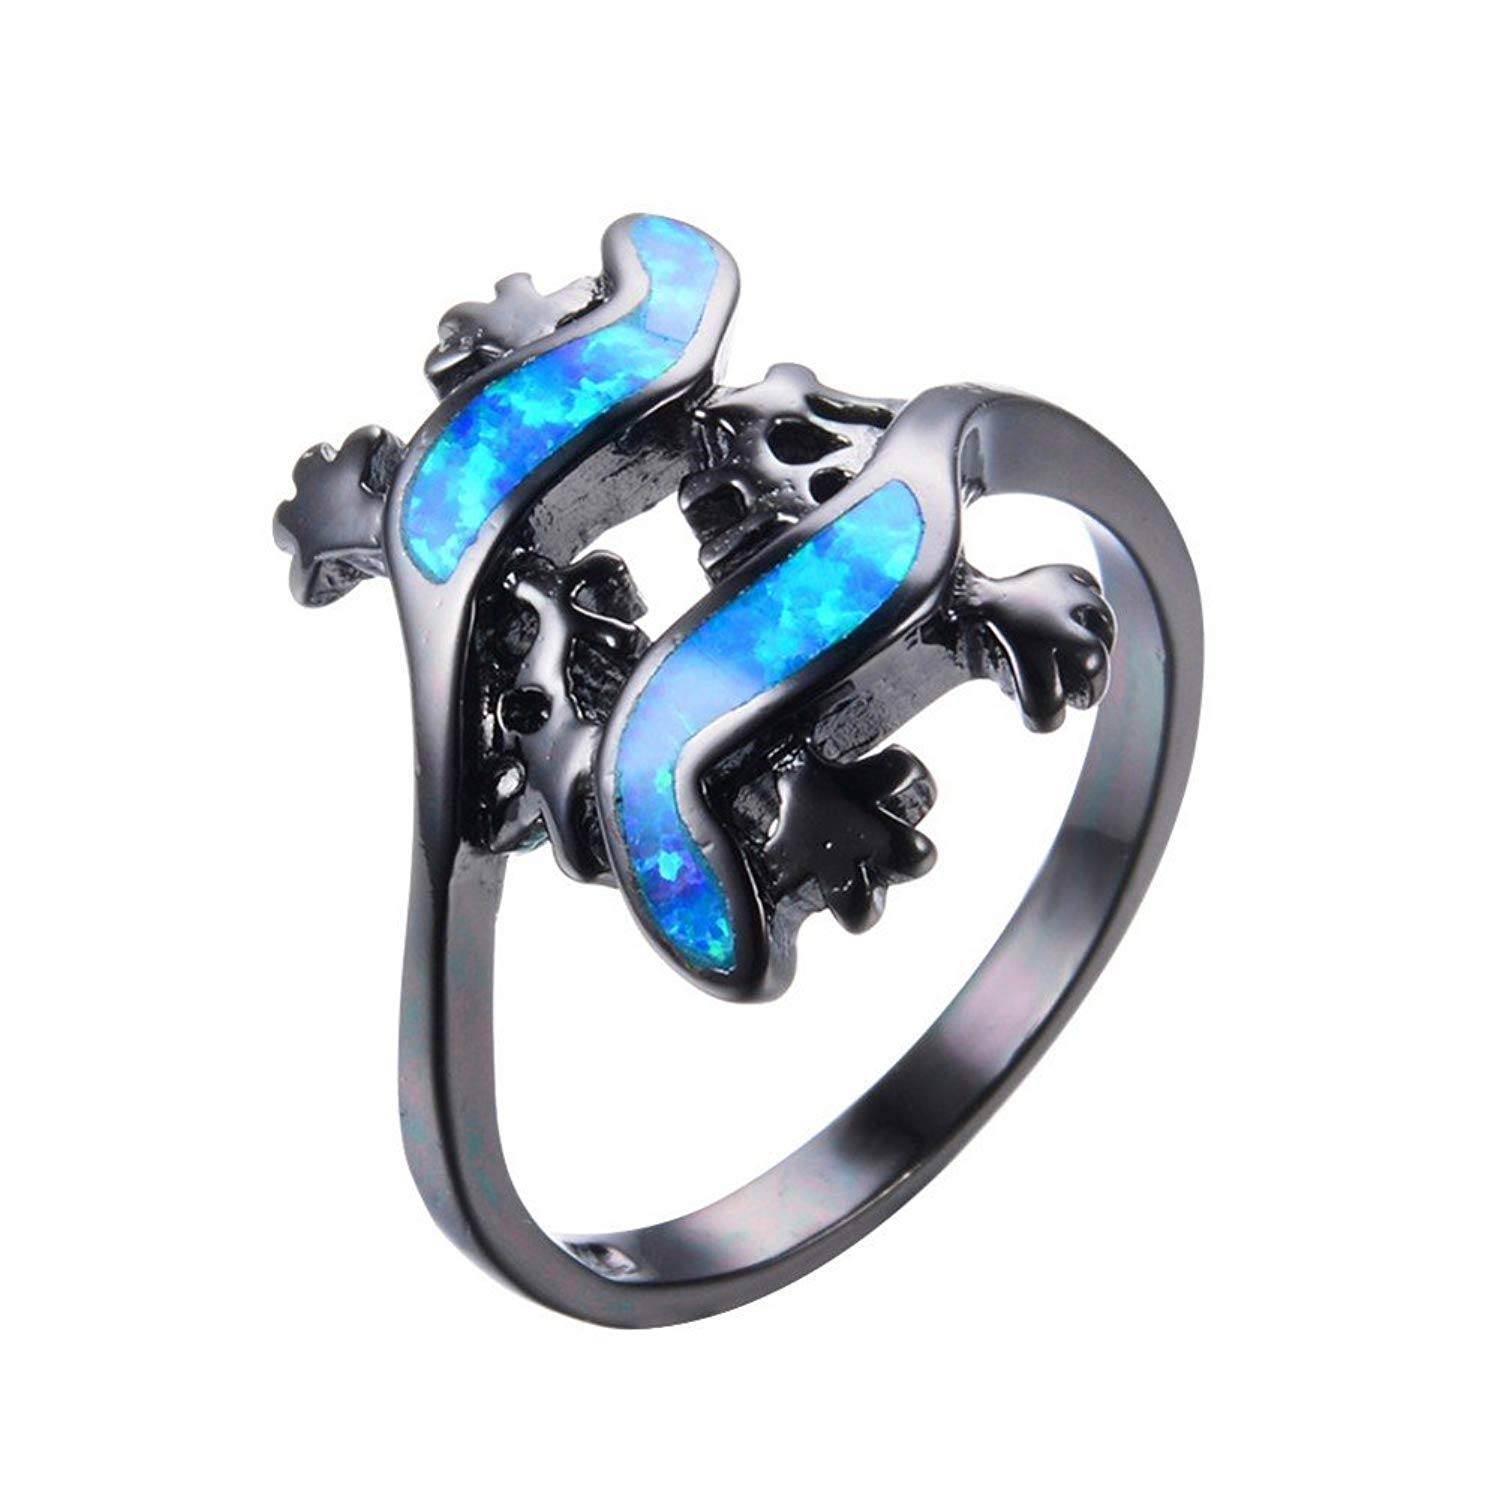 PSRINGS Lizard Shape Blue Fire Opal Rings Male Black Gold Filled Wedding Party BCharm Ring Unique Jewelry